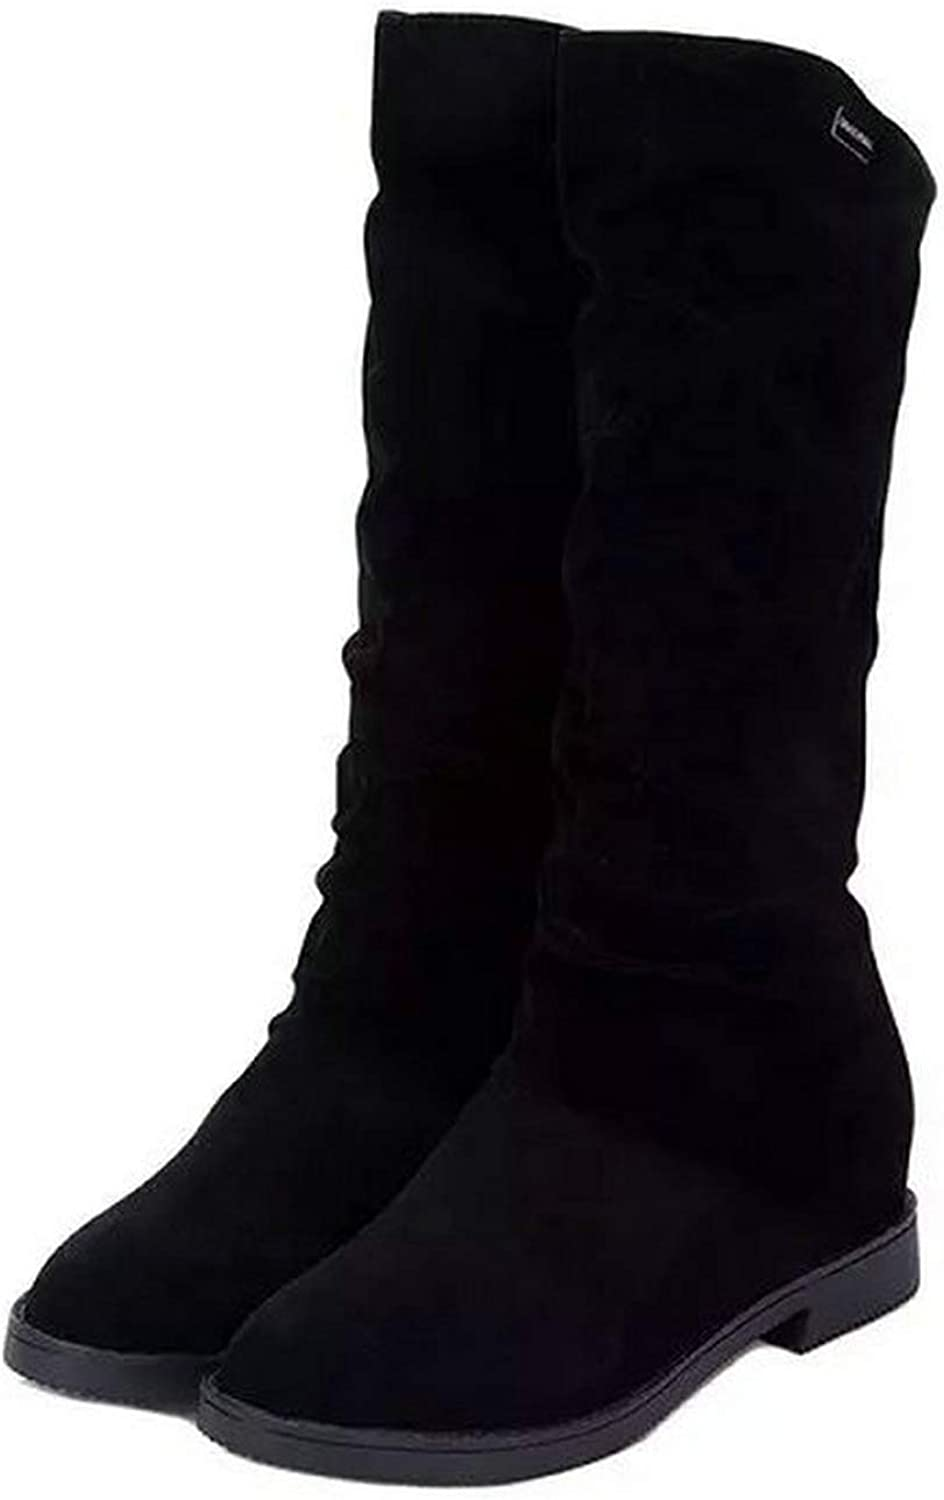 Women Boots Square Heels Round Toe Mid-Calf Boots Woman shoes Suede Leather Winter Boots